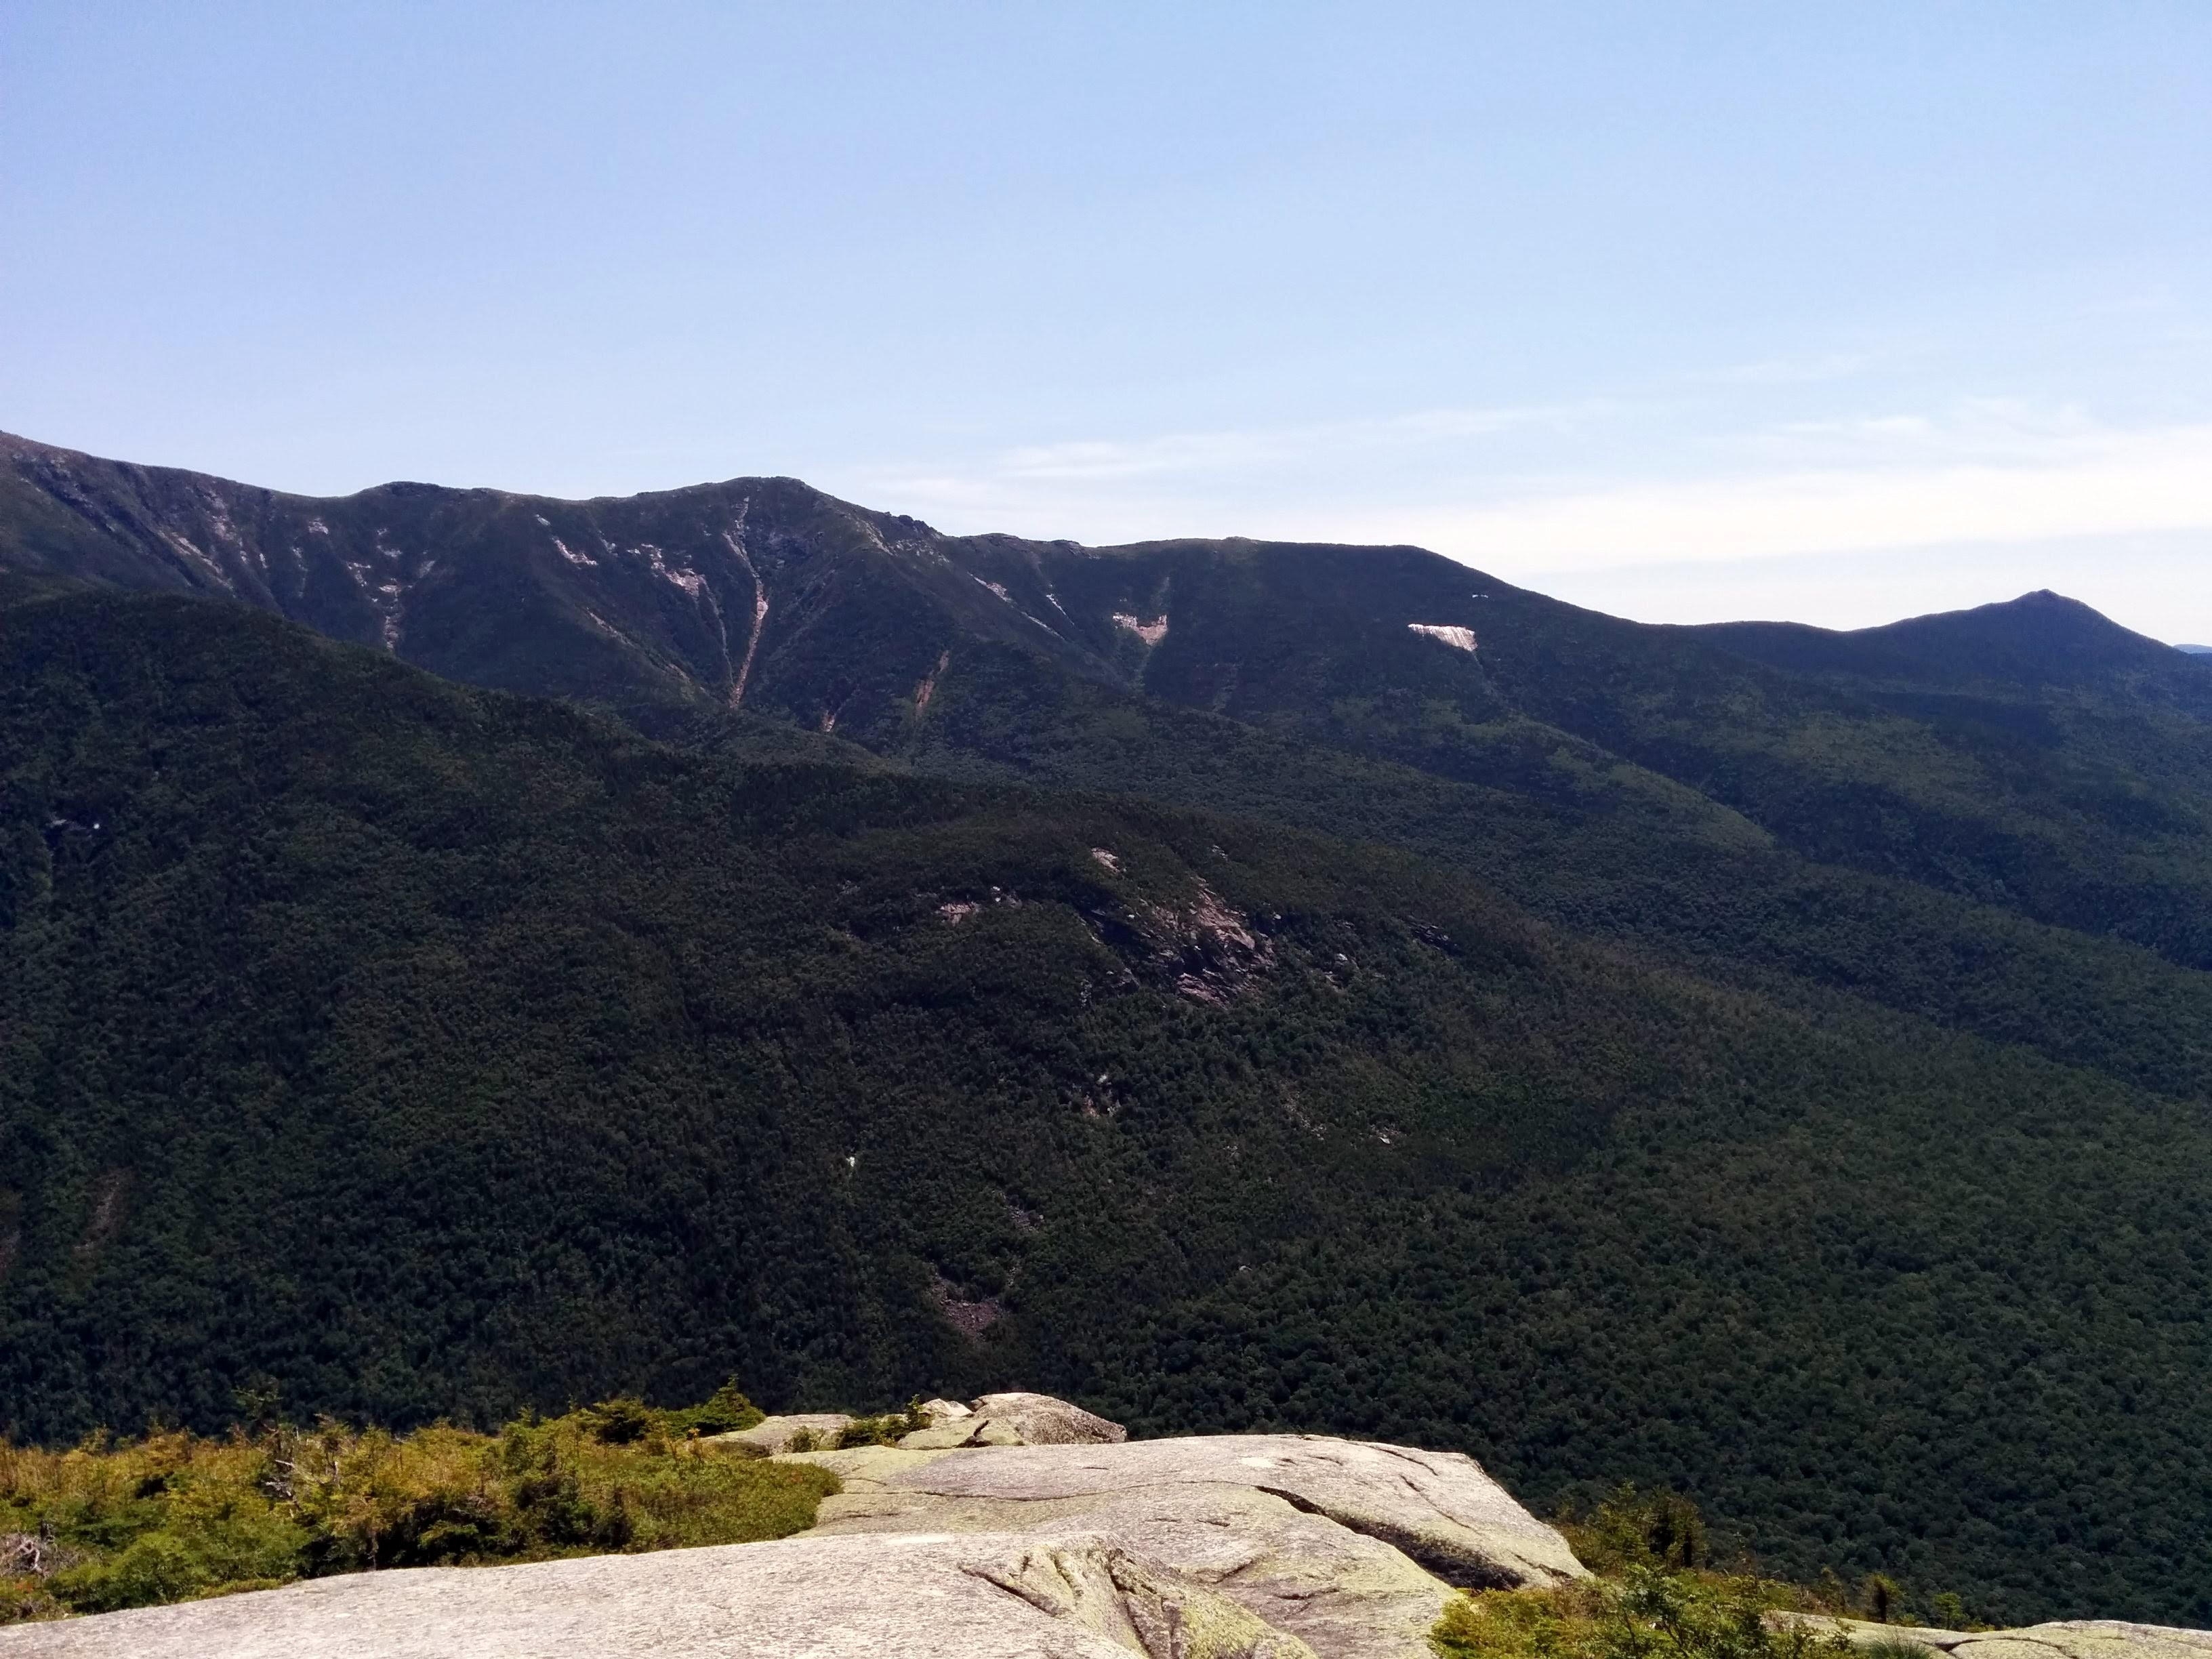 Photo: Another view of the ridge